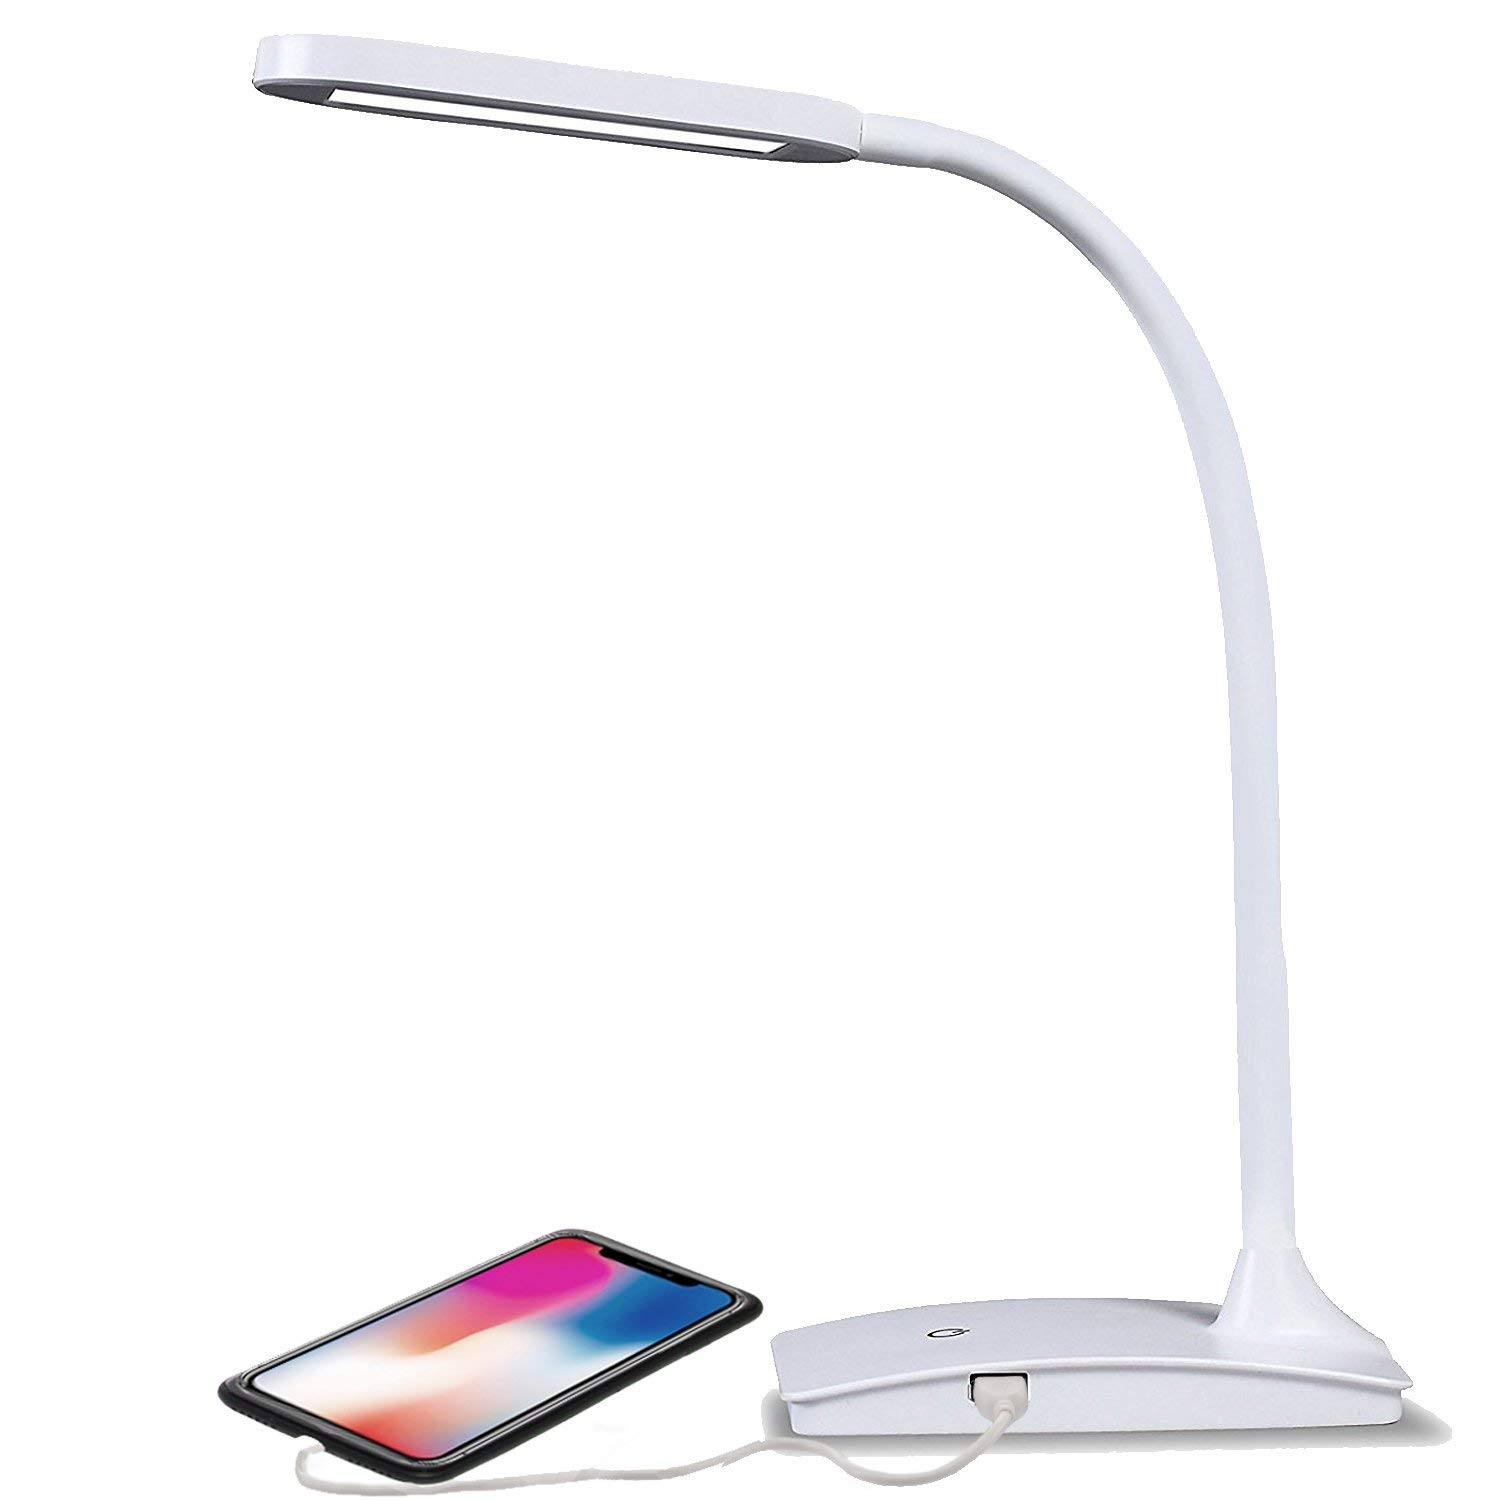 ویکالا · خرید  اصل اورجینال · خرید از آمازون · TW Lighting IVY-40WT The IVY LED Desk Lamp with USB Port, 3-Way Touch Switch, White wekala · ویکالا